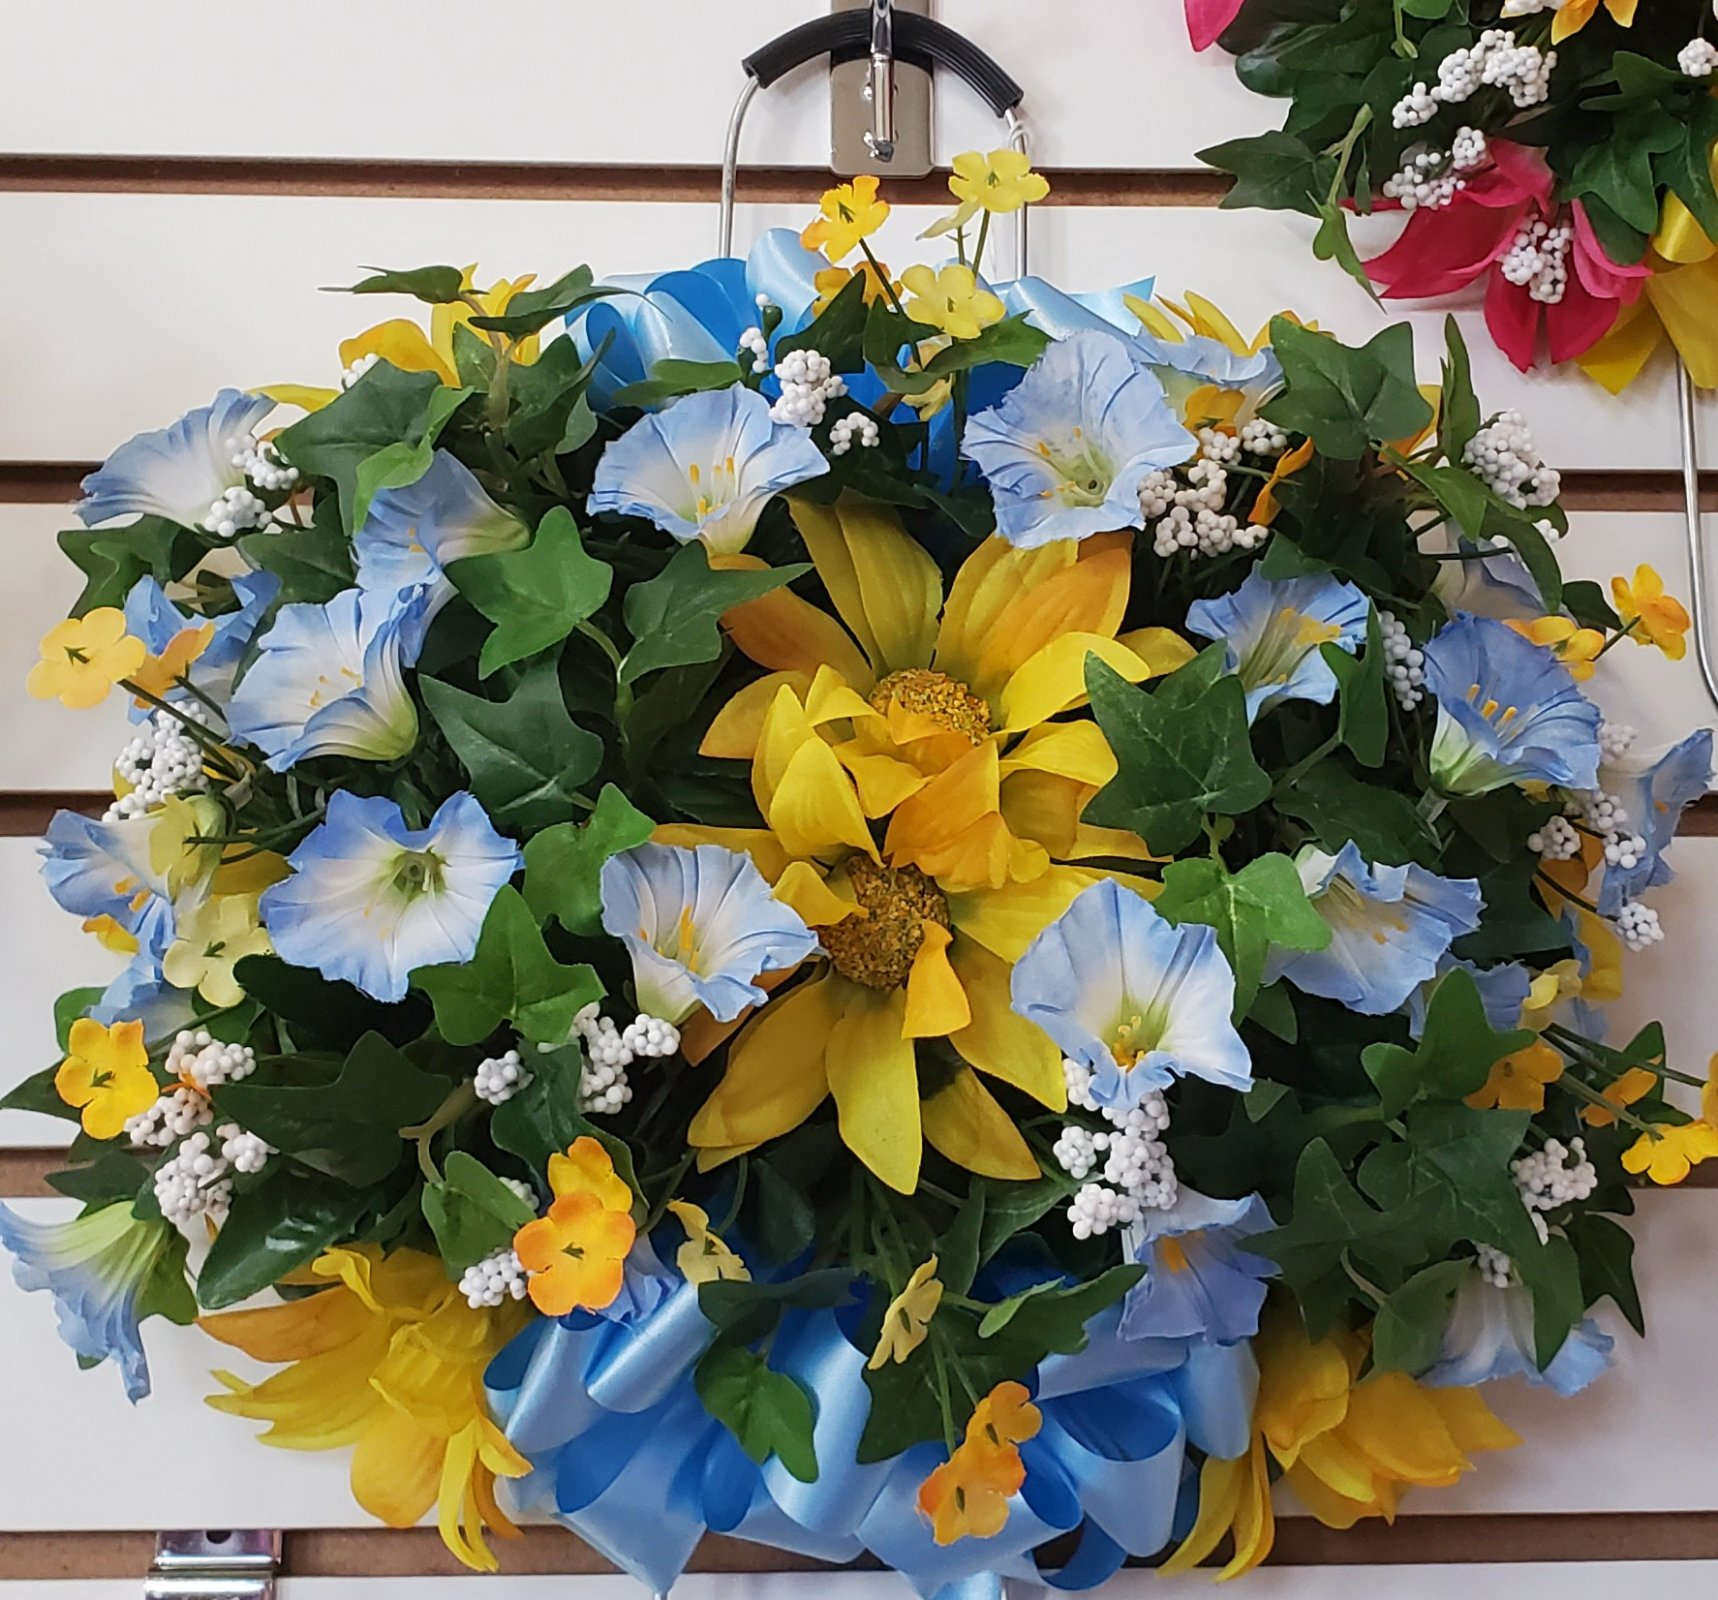 Small memorial grave stone saddle - blue/yellow